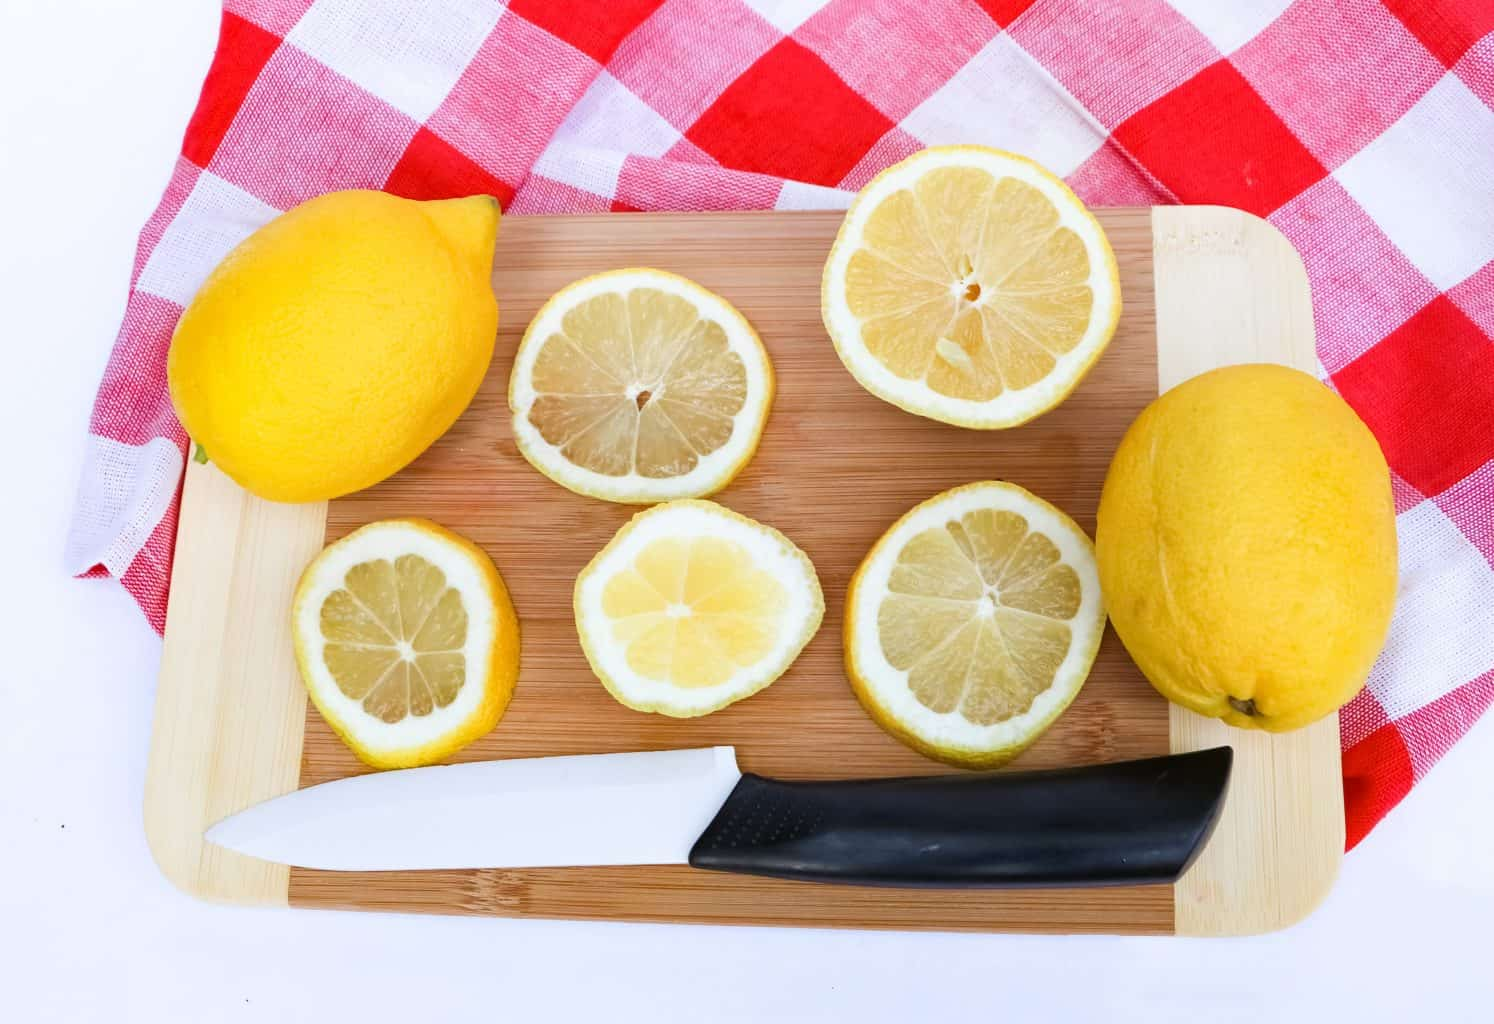 cutting slices of lemons for spiked tea recipe